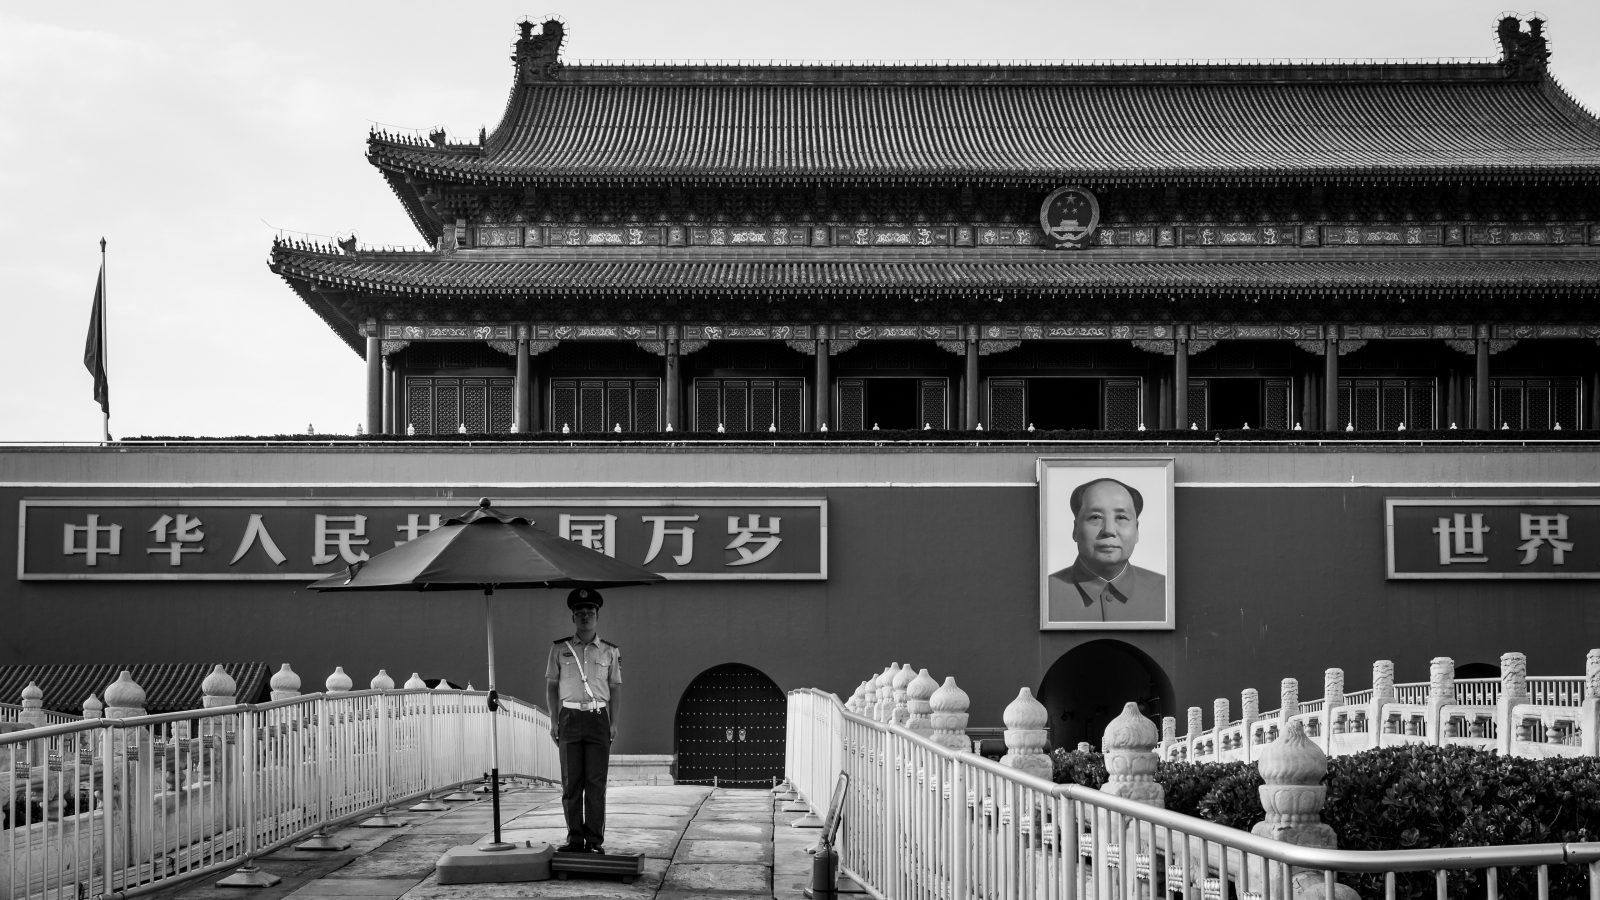 The Tiananmen square and its huge portrait of Chairman Mao